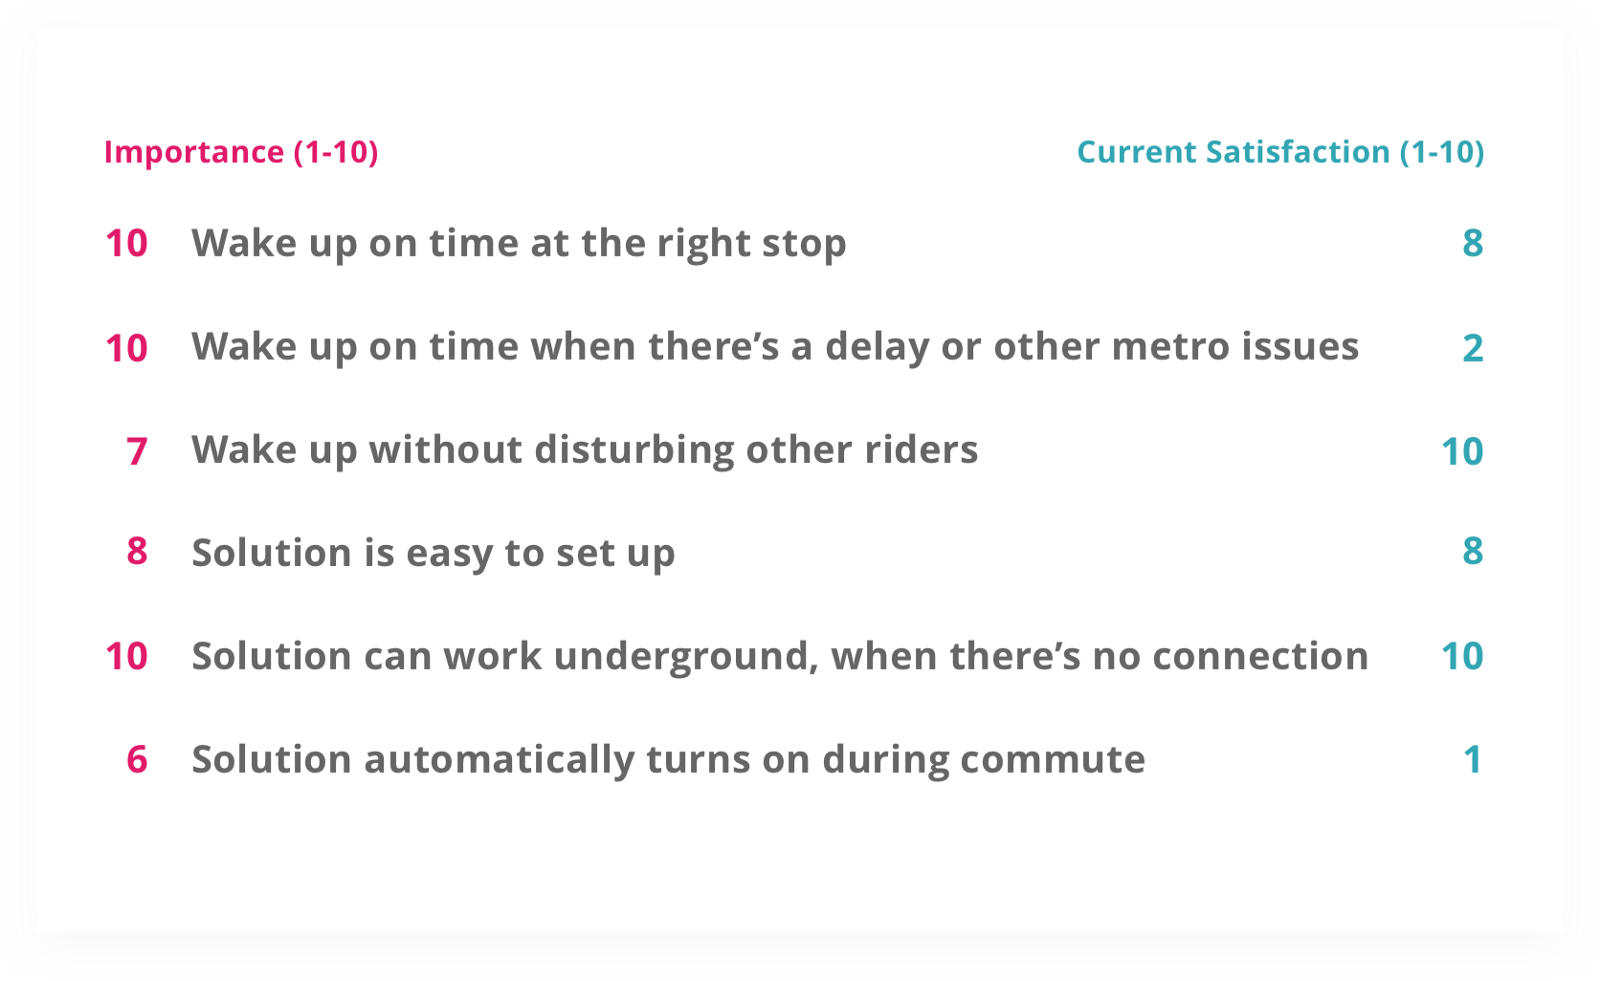 metro alarm \u2014 a ux case study \u2013 ux collectivei assumed that the user would be using an existing solution like the out of the box alarm on their phone, and rated how these outcomes would be satisfied by